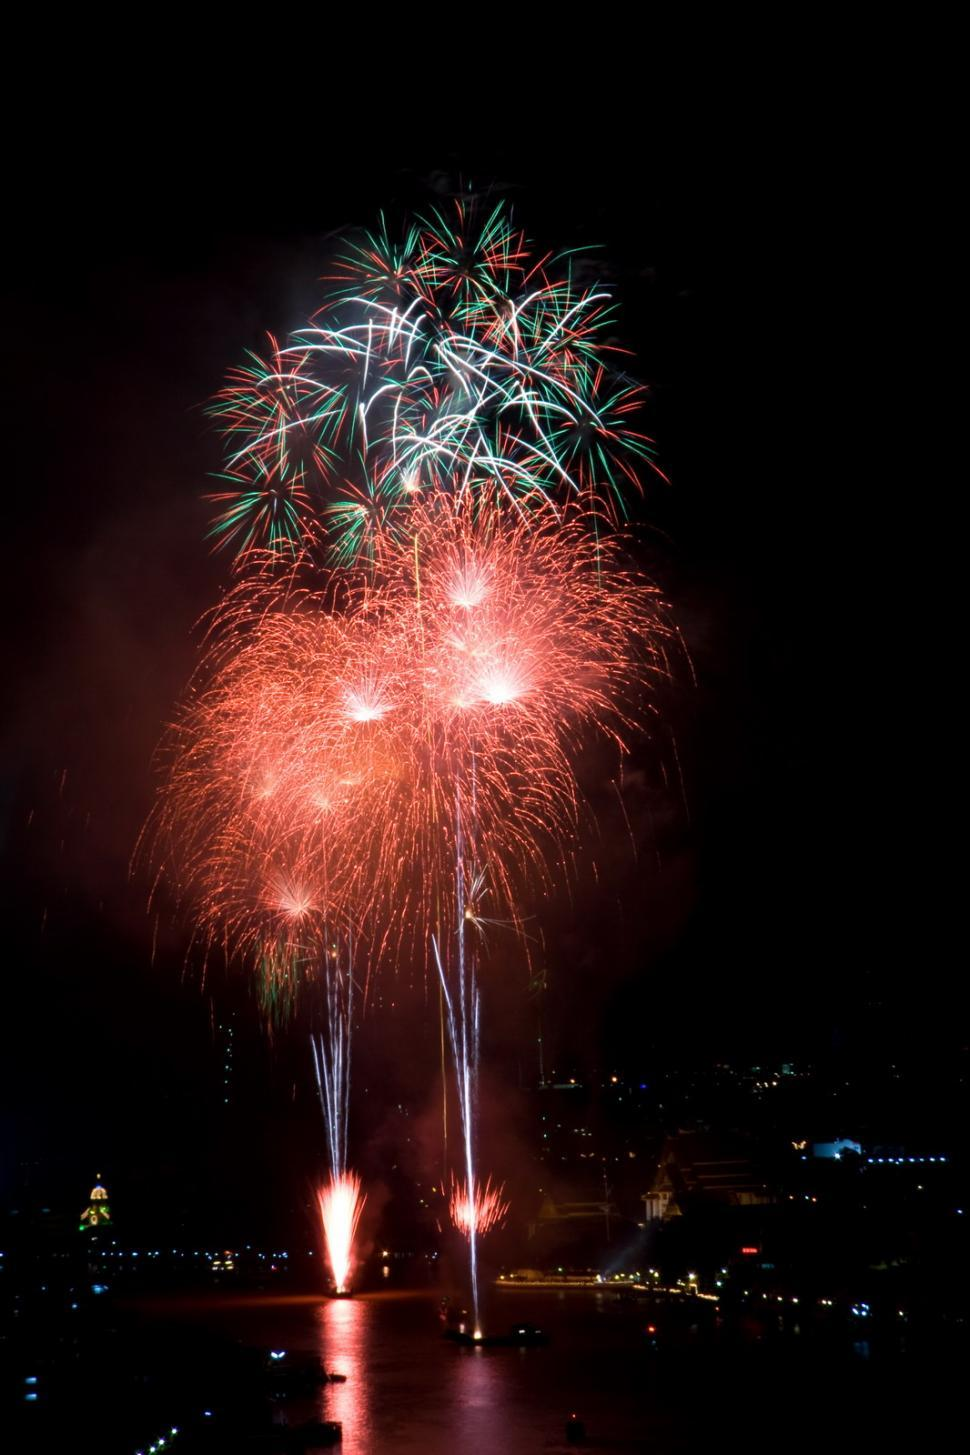 Download Free Stock HD Photo of Fireworks over Chao Phraya river, Bangkok Online